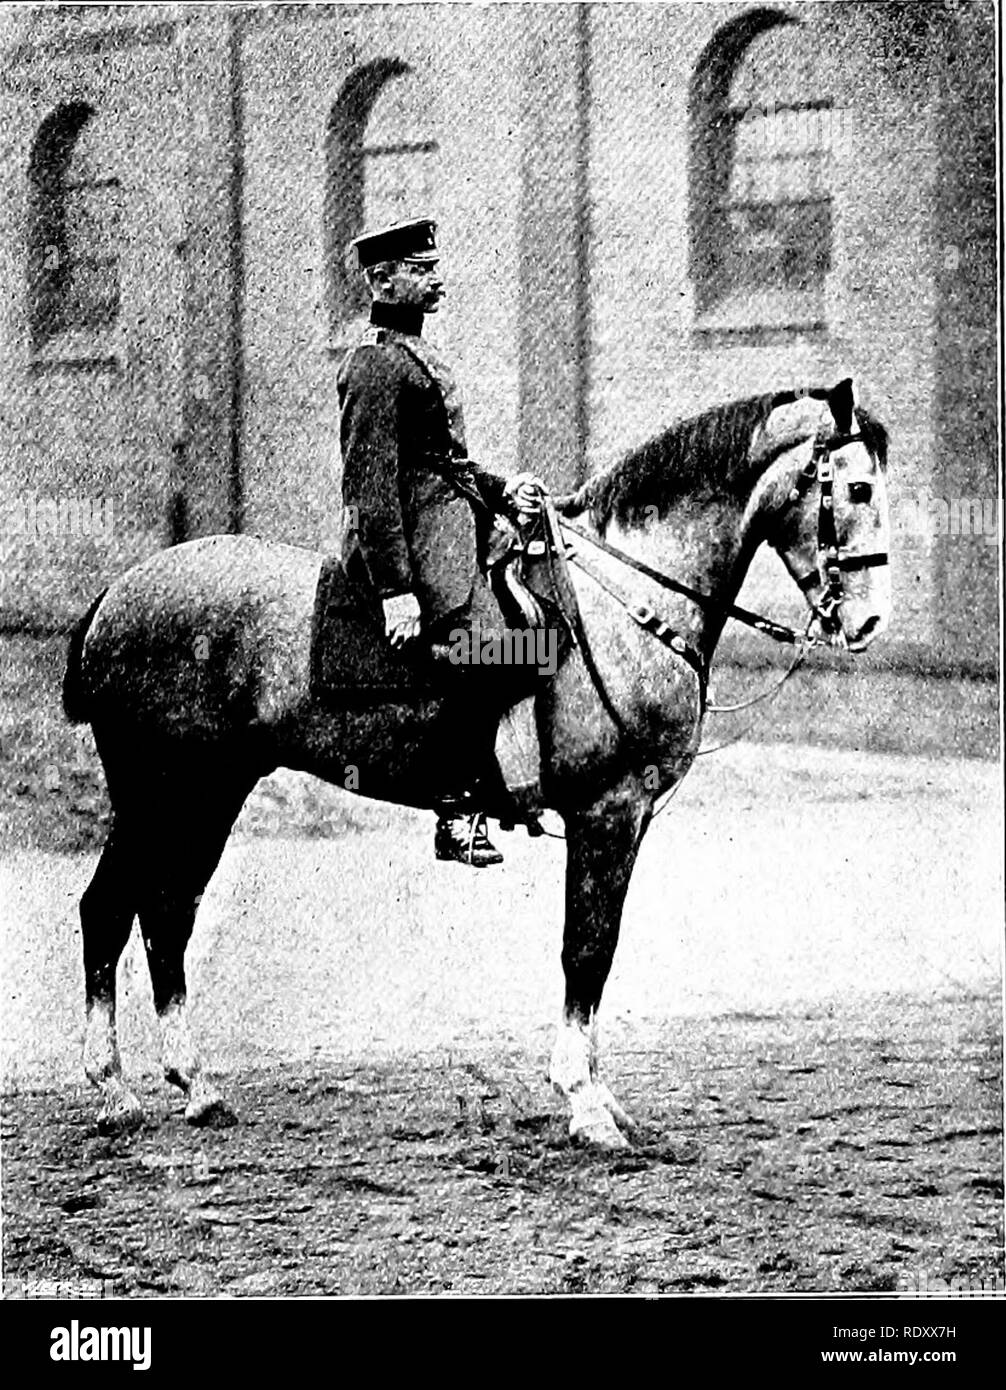 . Our domestic animals, their habits, intelligence and usefulness; tr. from the French of Gos. De Voogt, by Katharine P. Wormeley;. Domestic animals. Trumpeters ok the Cuirassiers thousand in times of war. Her remounts come chiefly from Hungary, only a few being obtained within her own borders. Belgium has more than ten thousand horses, and her annual remount is one thousand ; the draft or transportation horses are easily derived from the Ardennes. The breeding of cavalry horses is encouraged to the utmost by the government. England has an annual need of nearly three thousand remounts, which i Stock Photo